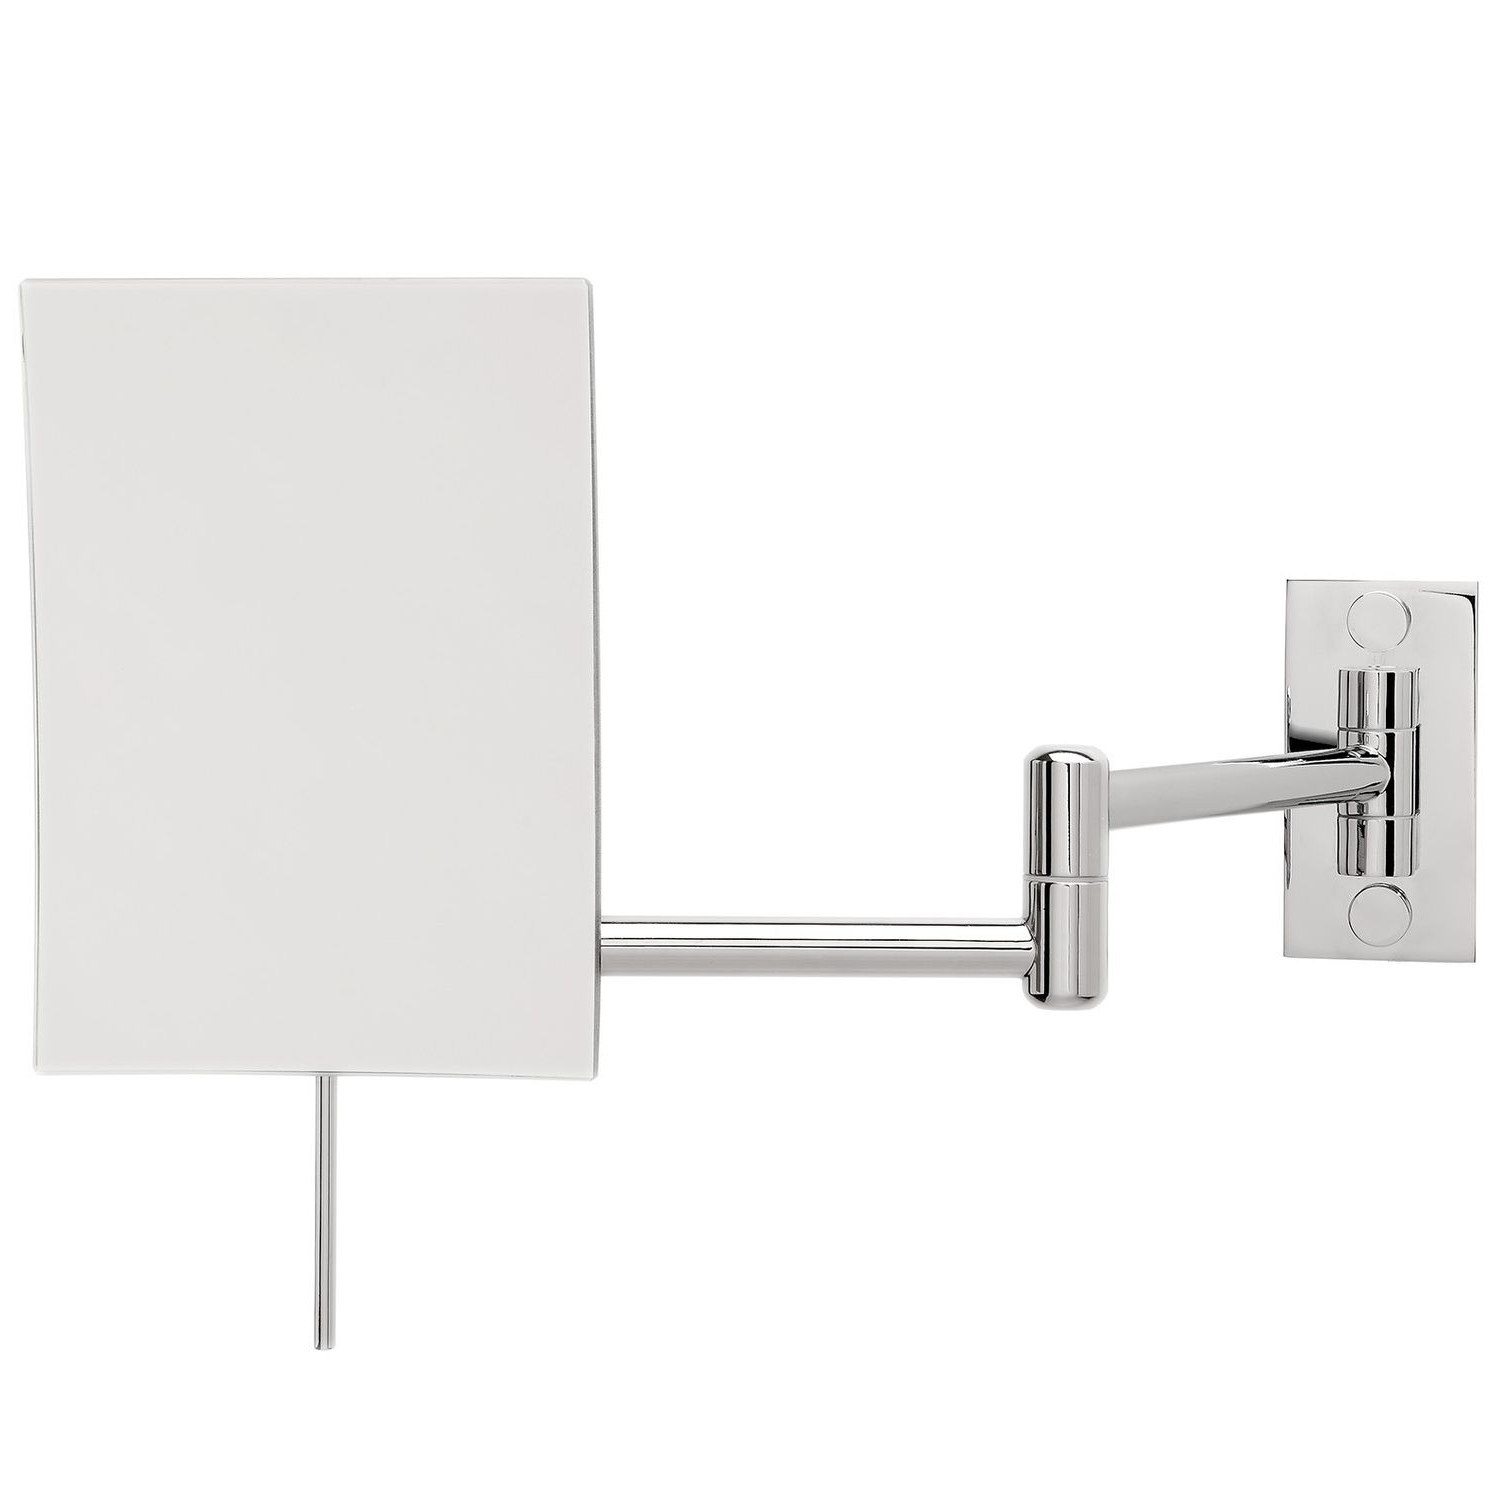 2019 Wall Mounted Bathroom Mirror / Magnifying / Contemporary With Regard To Magnifying Wall Mirrors For Bathroom (View 19 of 20)